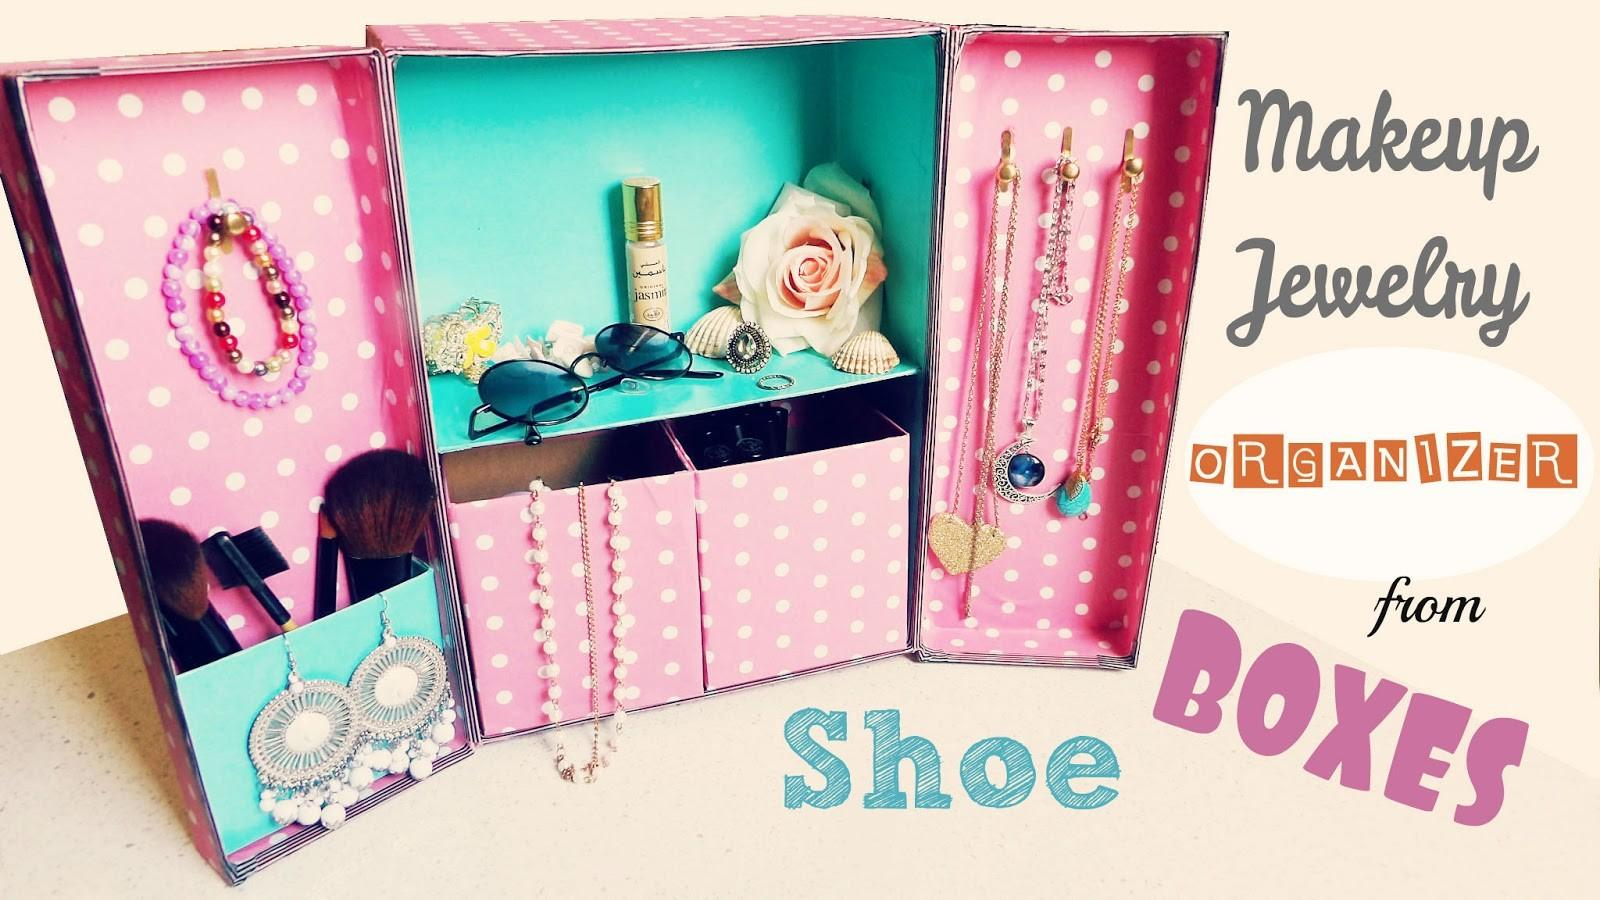 Diy Storage Ideas Makeup Jewelry Organizer Shoe